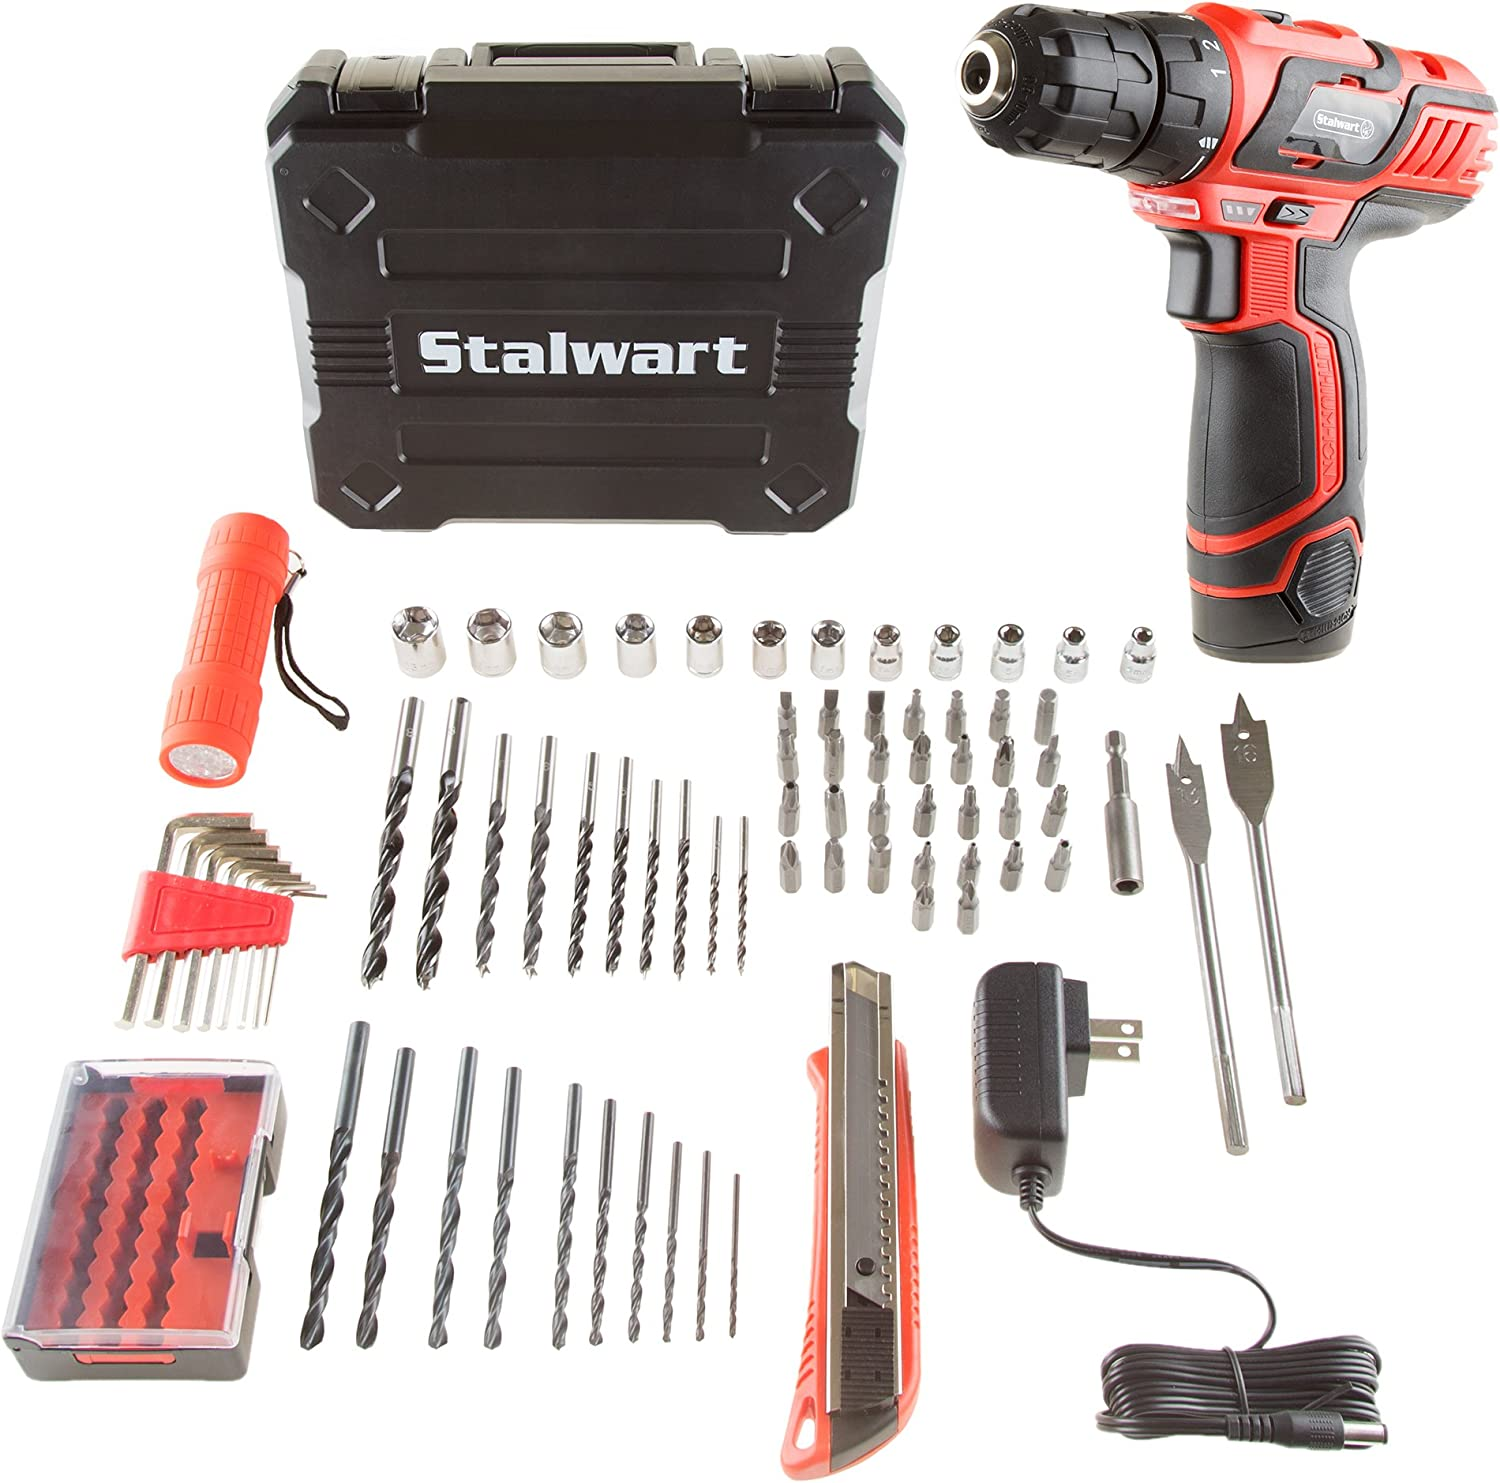 Max 42% OFF Stalwart 75-PT1003 12V Max 57% OFF Lithium Ion 75 2 Drill Pc Accesso Speed